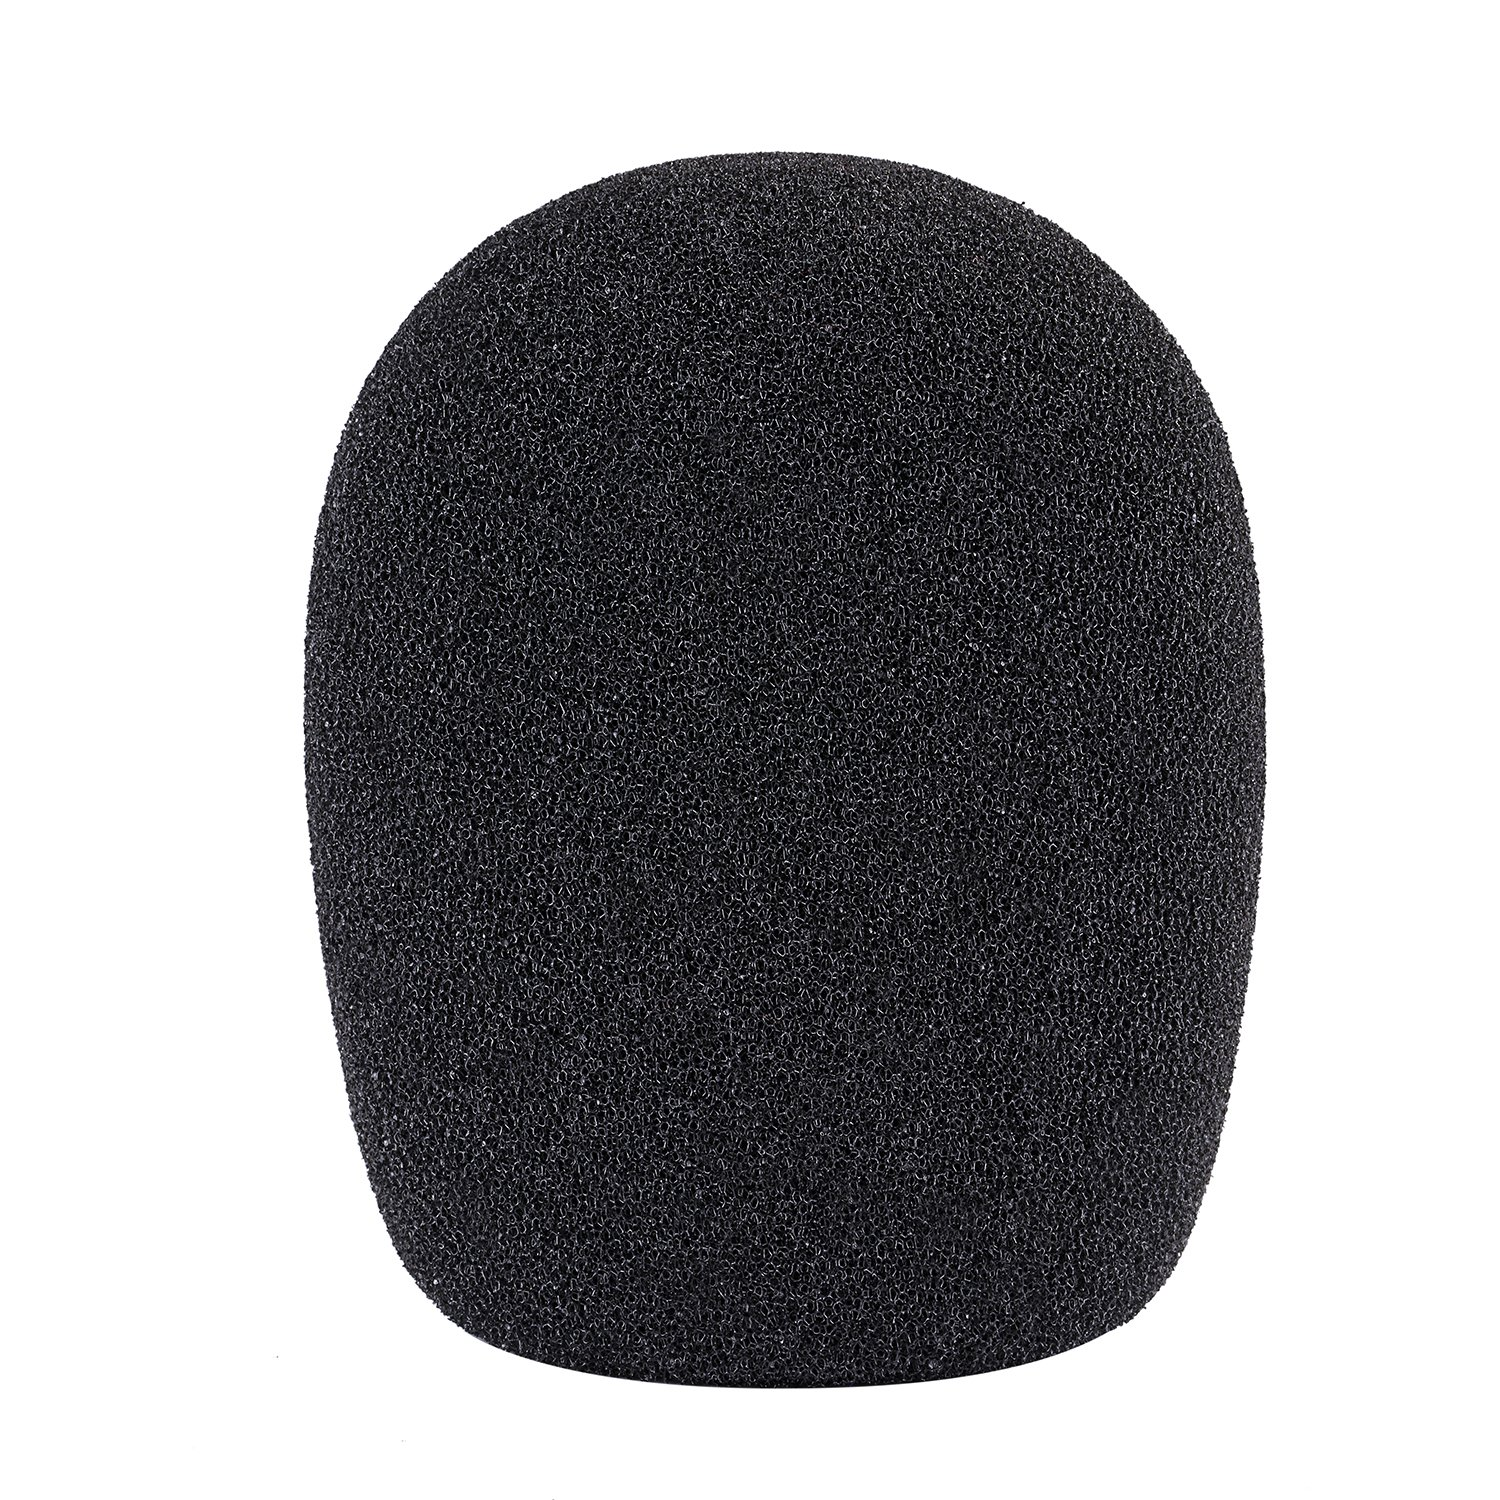 Neewer® Ball Type Foam Windscreen Pop Filter for Condenser Microphone,1.8 x 1.8 x 3.54/ 4.5cm x 4.5cm x 9cm , Black 40088463